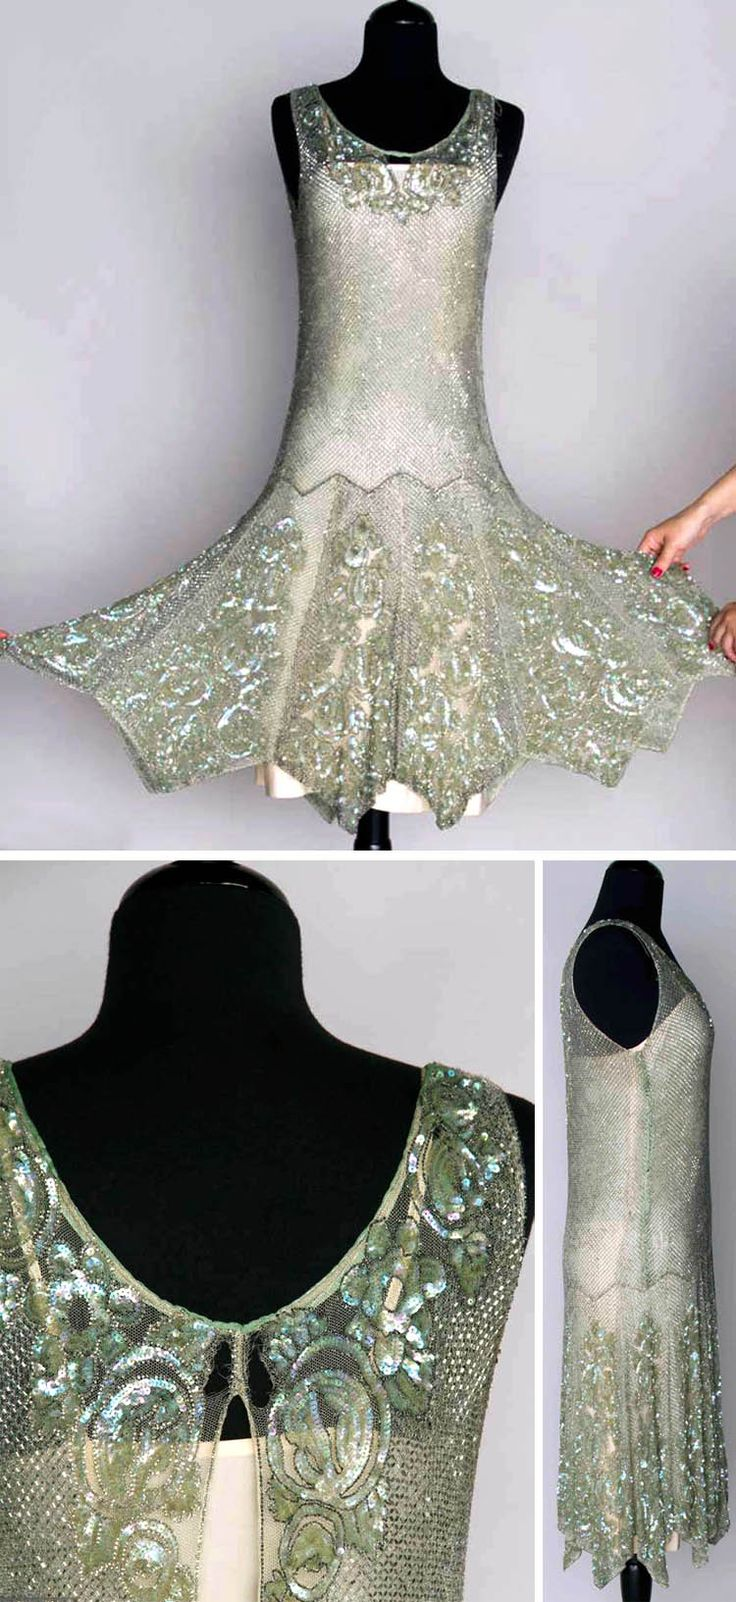 Beaded and sequined dance dress, 1920s. Seafoam green, silver bugle bead lattice pattern with iridescent sequined roses at neckline  hem.                                                                                                                                                                                 More